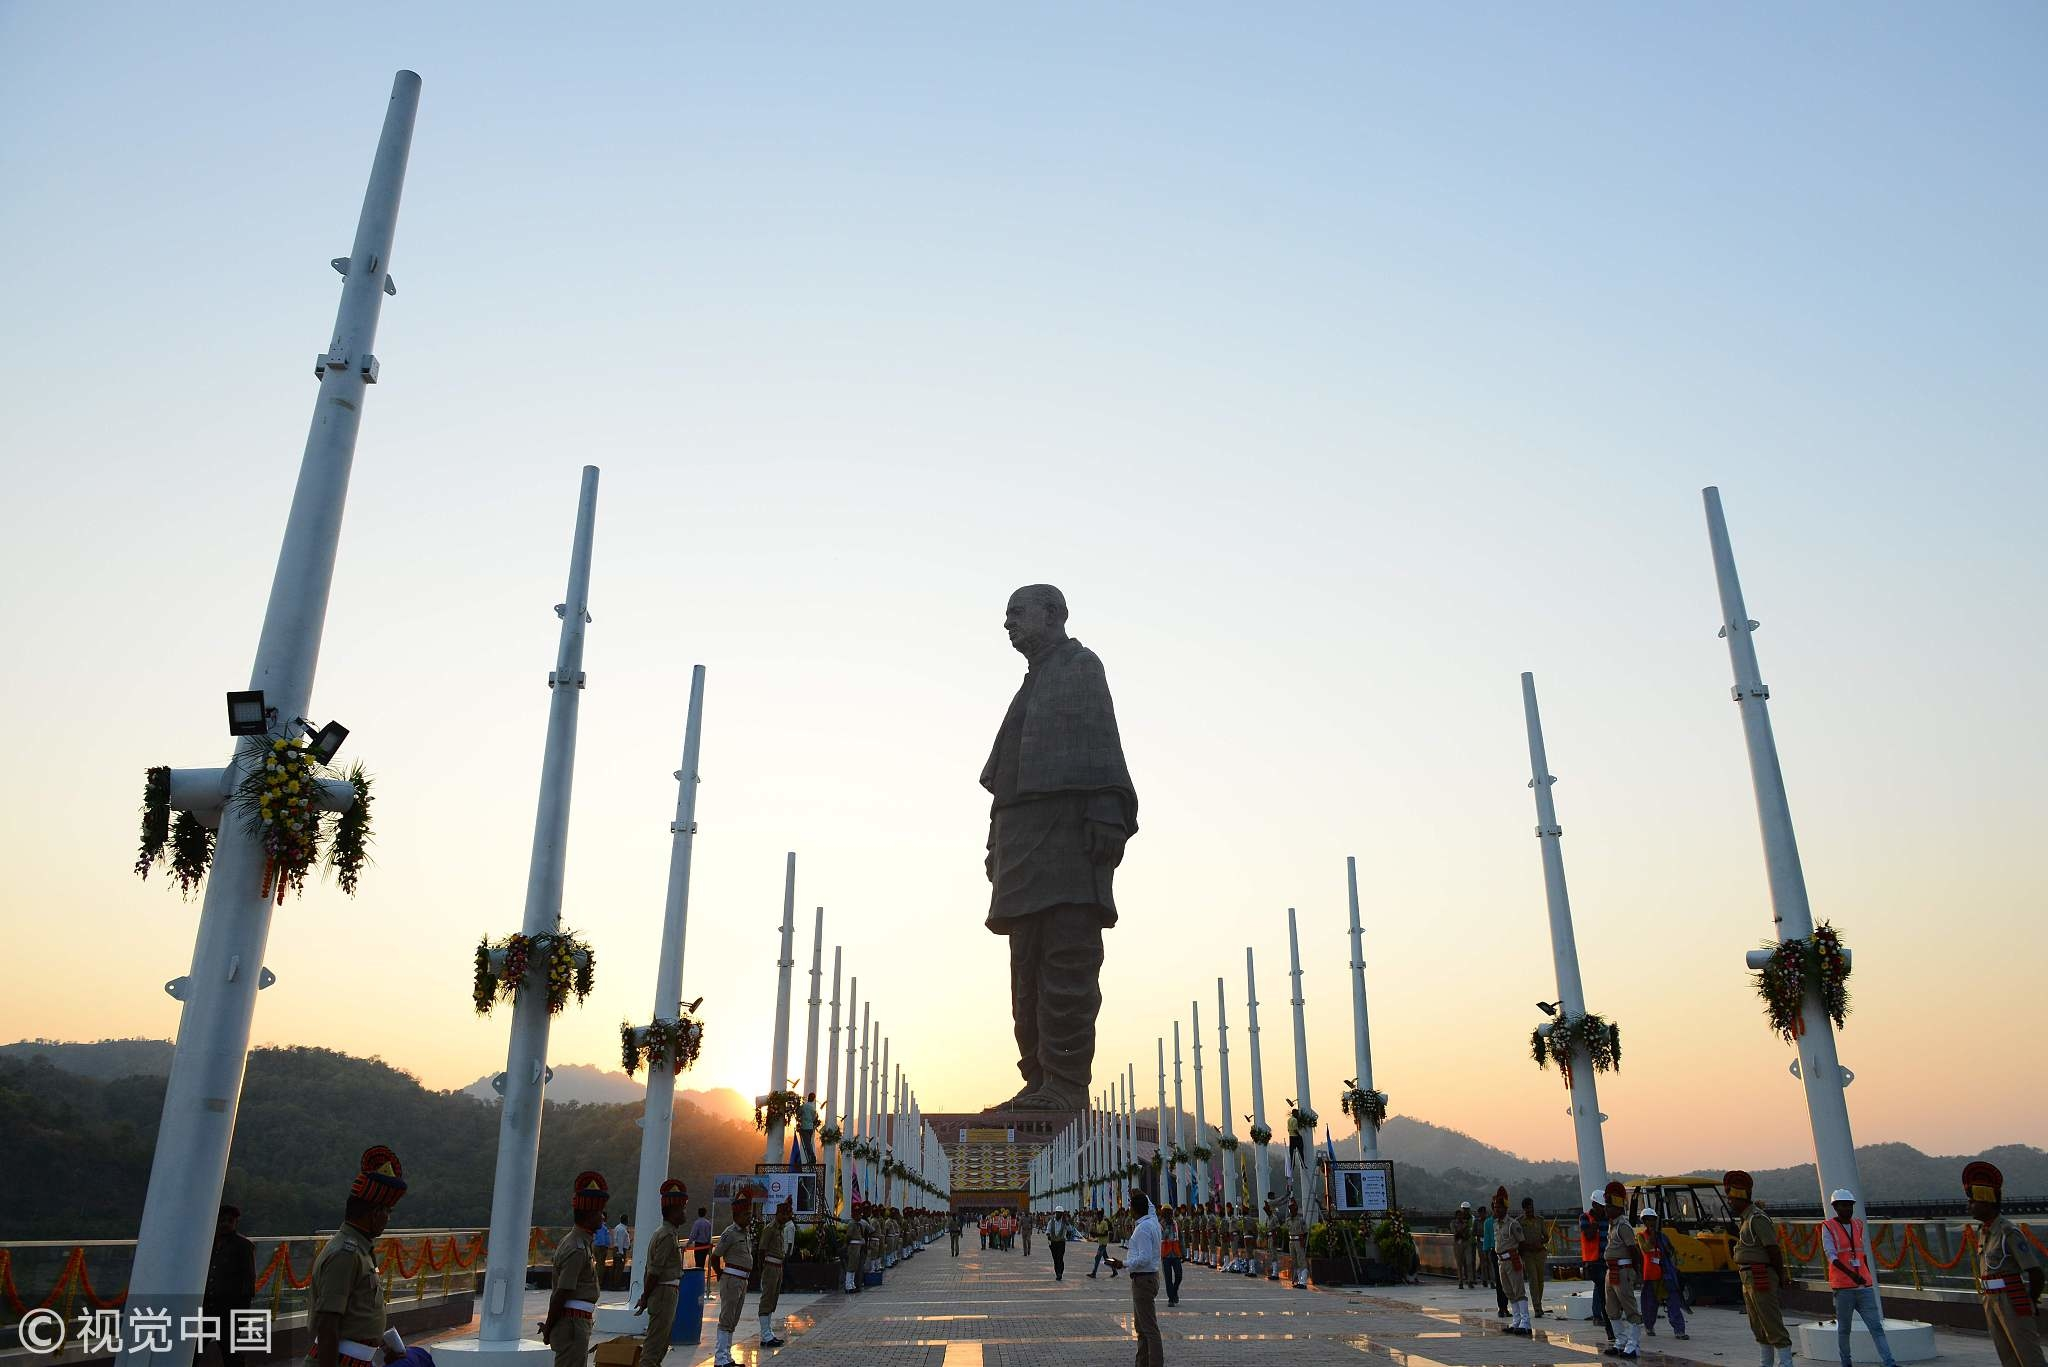 'Statue of Unity'